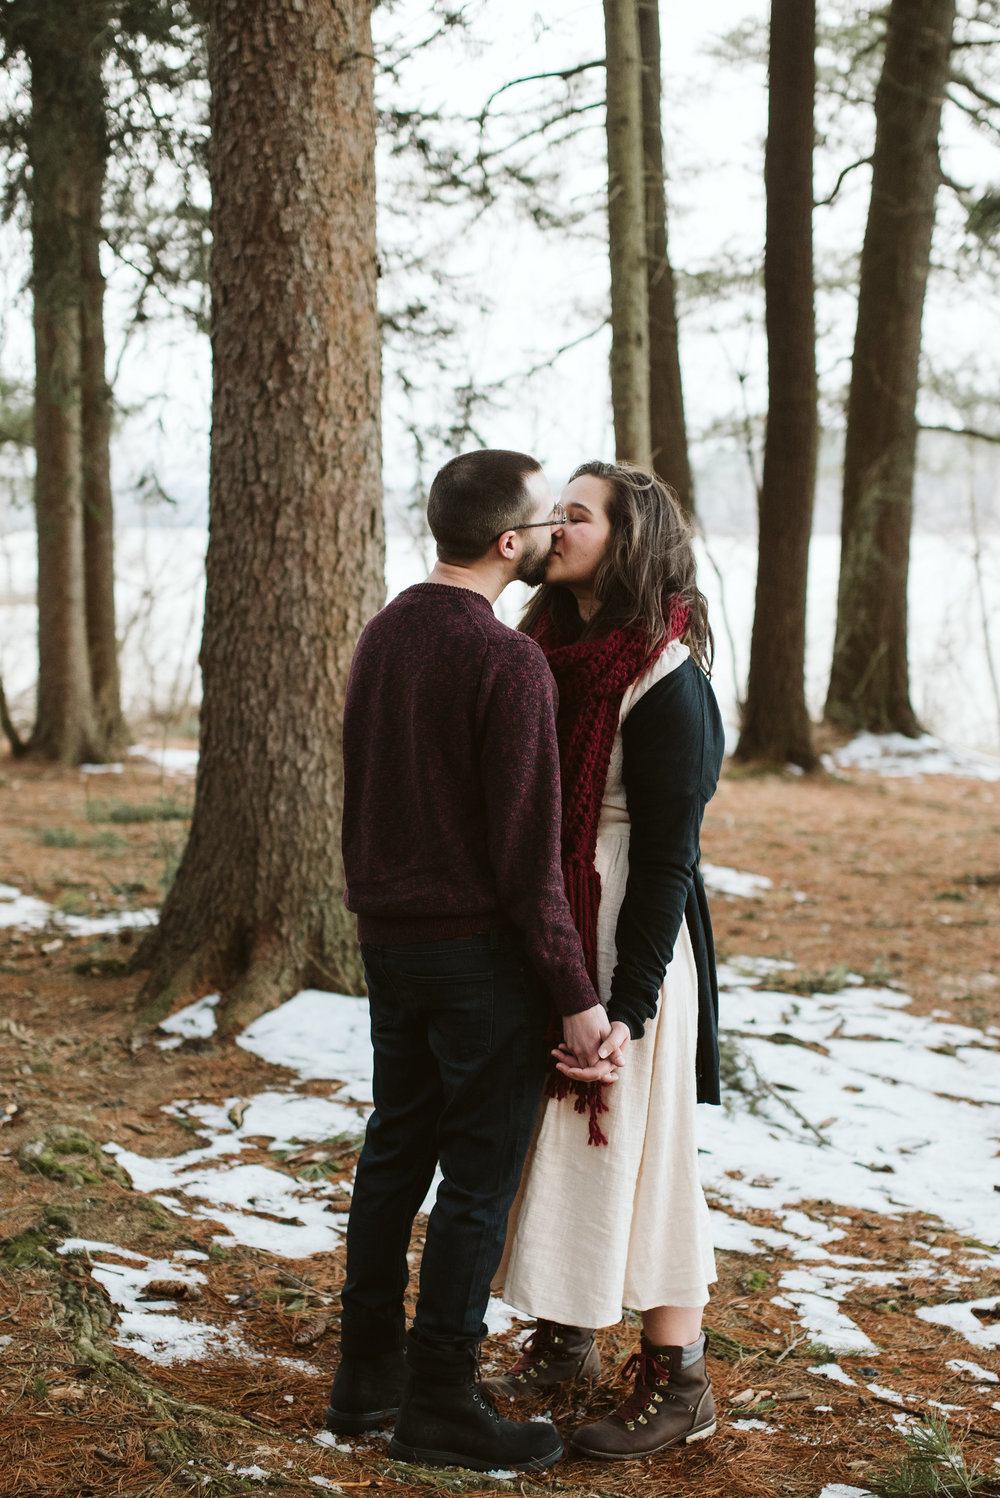 Baltimore County, Loch Raven Reservoir, Maryland Wedding Photographer, Winter, Engagement Photos, Nature, Romantic, Clean and Classic, Bride and Groom Kissing in the Trees, White Dress, Burgundy Sweater